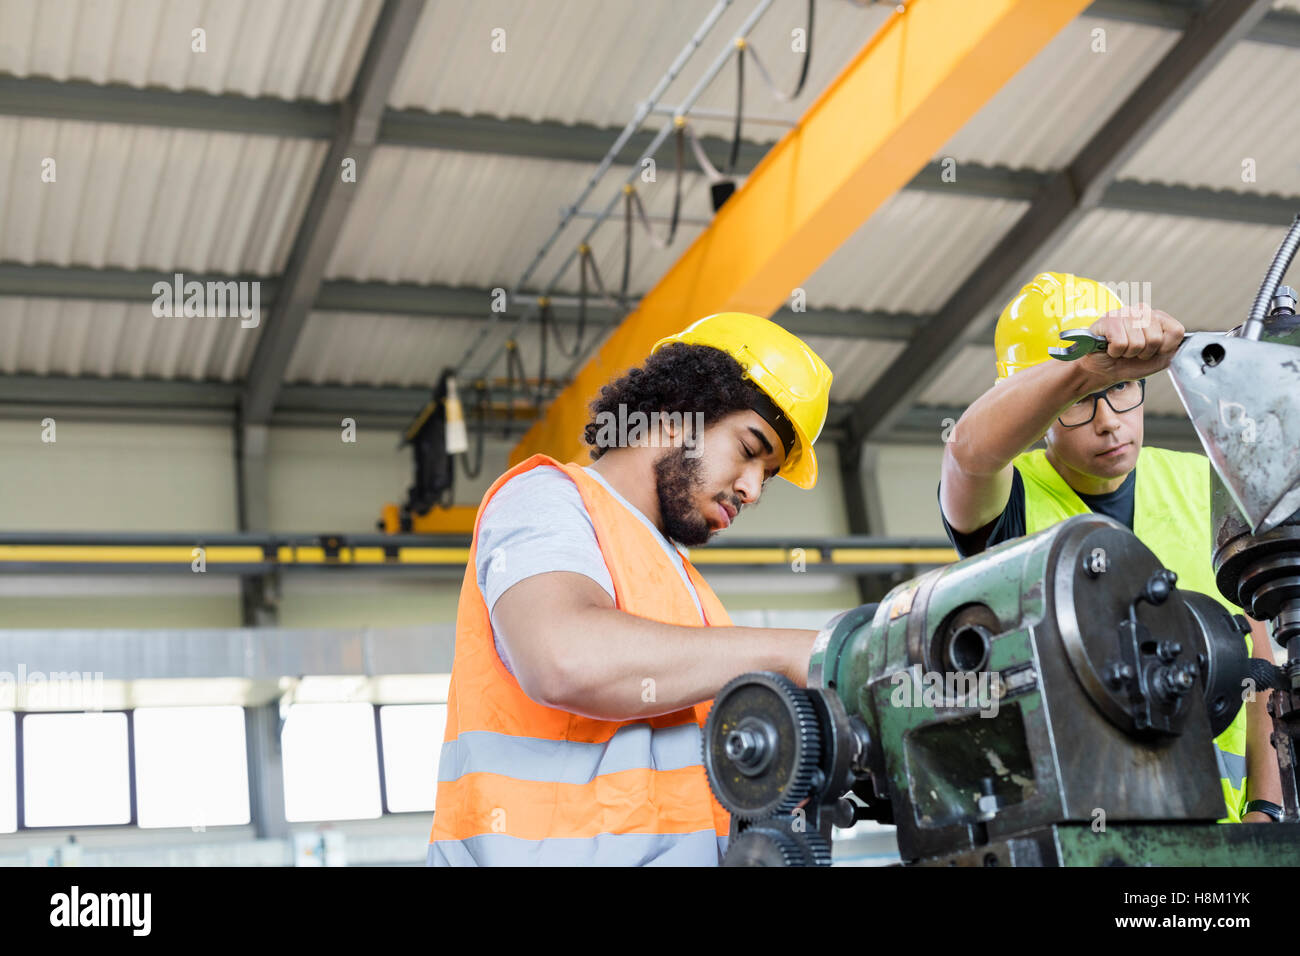 Low angle view of manual workers working on machinery in metal industry Stock Photo